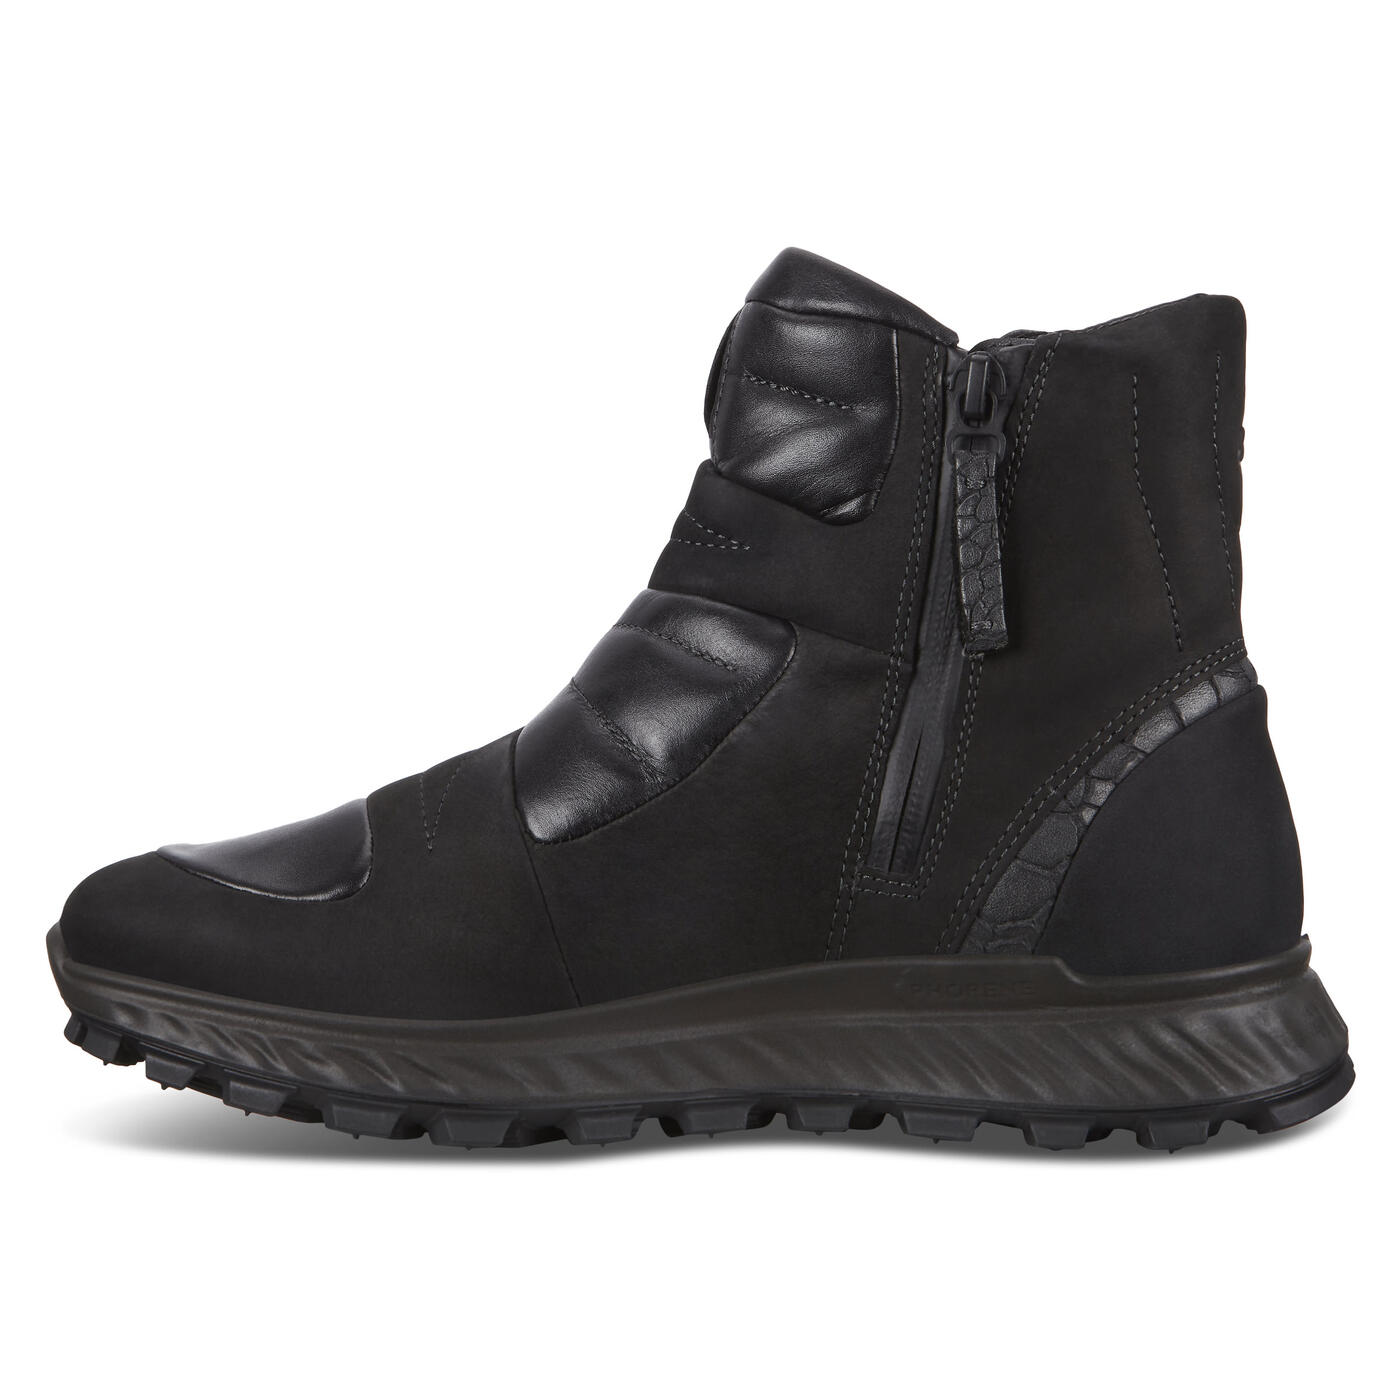 ECCO EXOSTRIKE Women's Boot